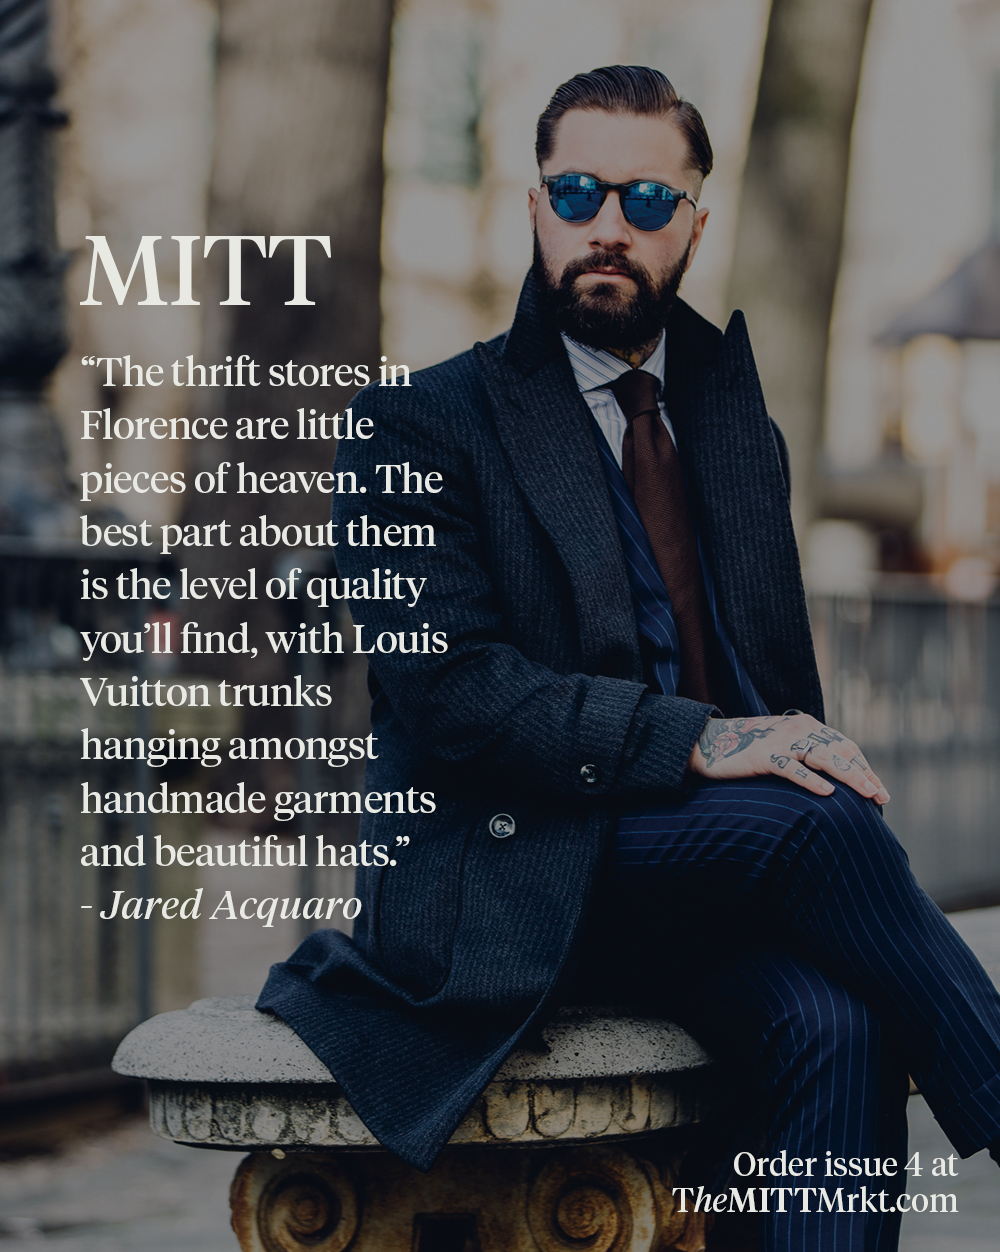 MITT   magazine issue 4 is now available to pre-order at   The MITT Mrkt.